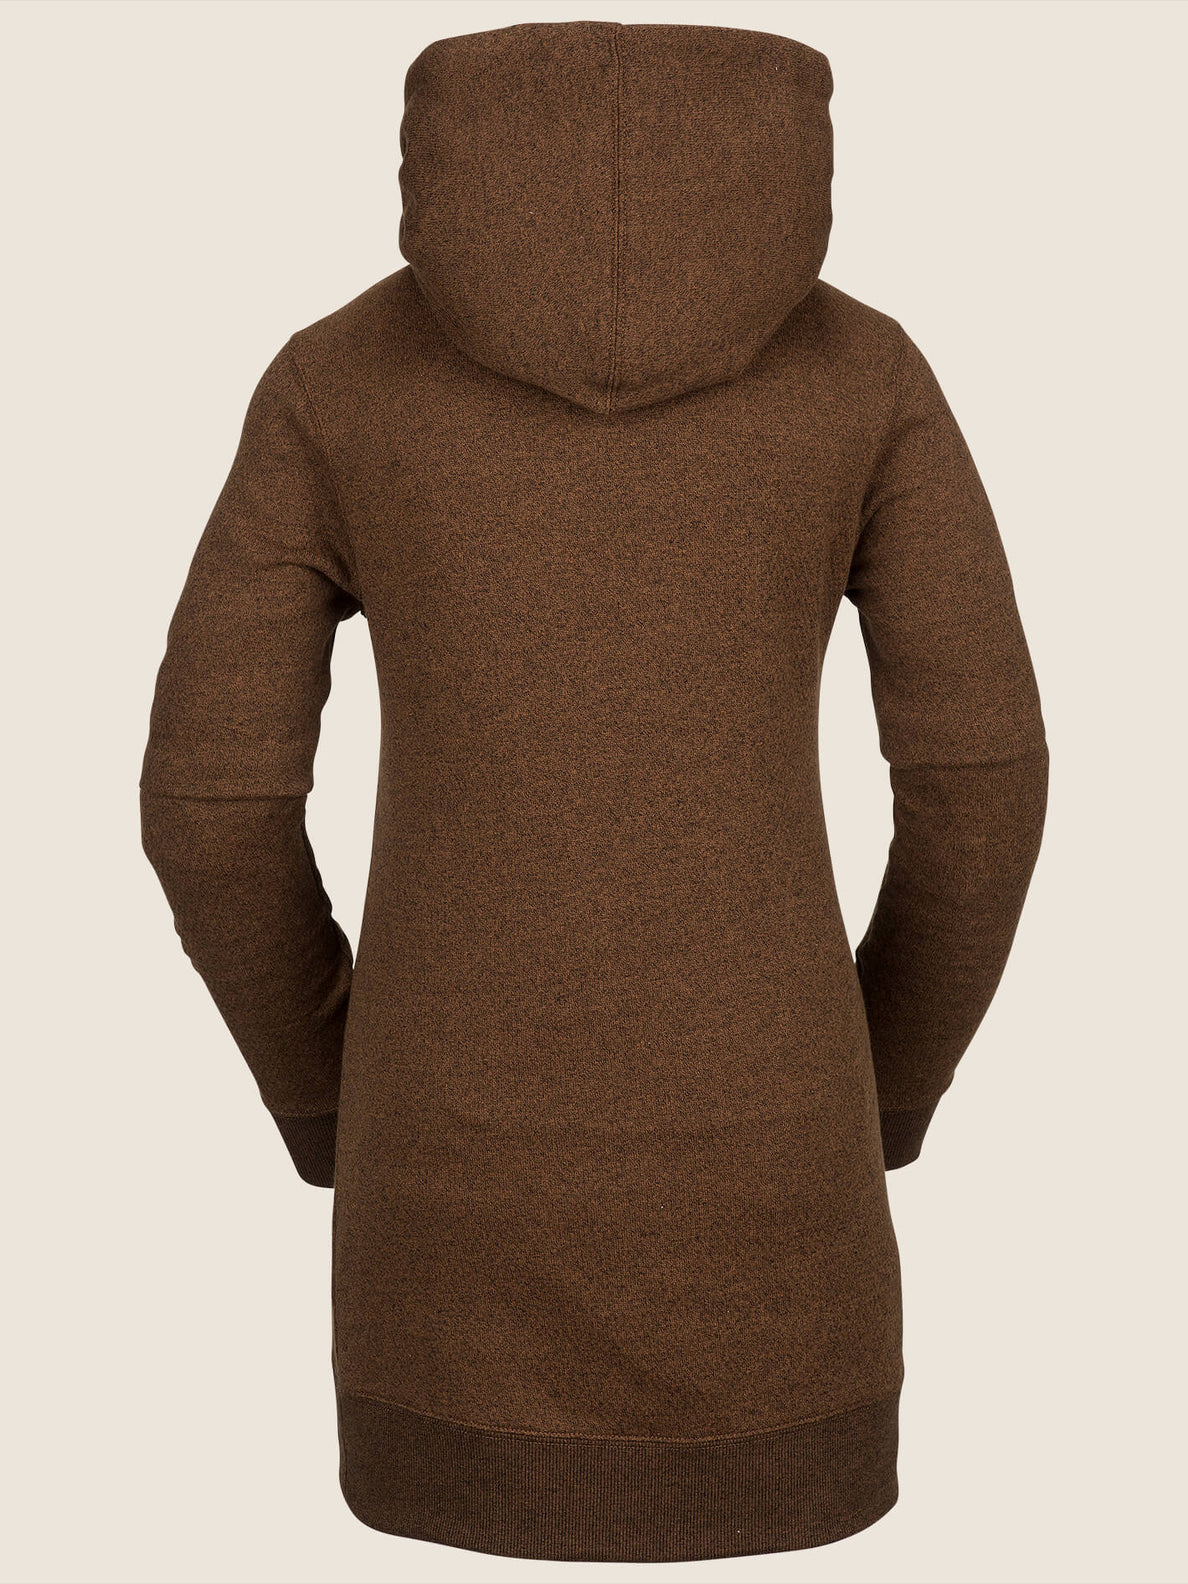 Tower Pullover Fleece In Copper, Back View